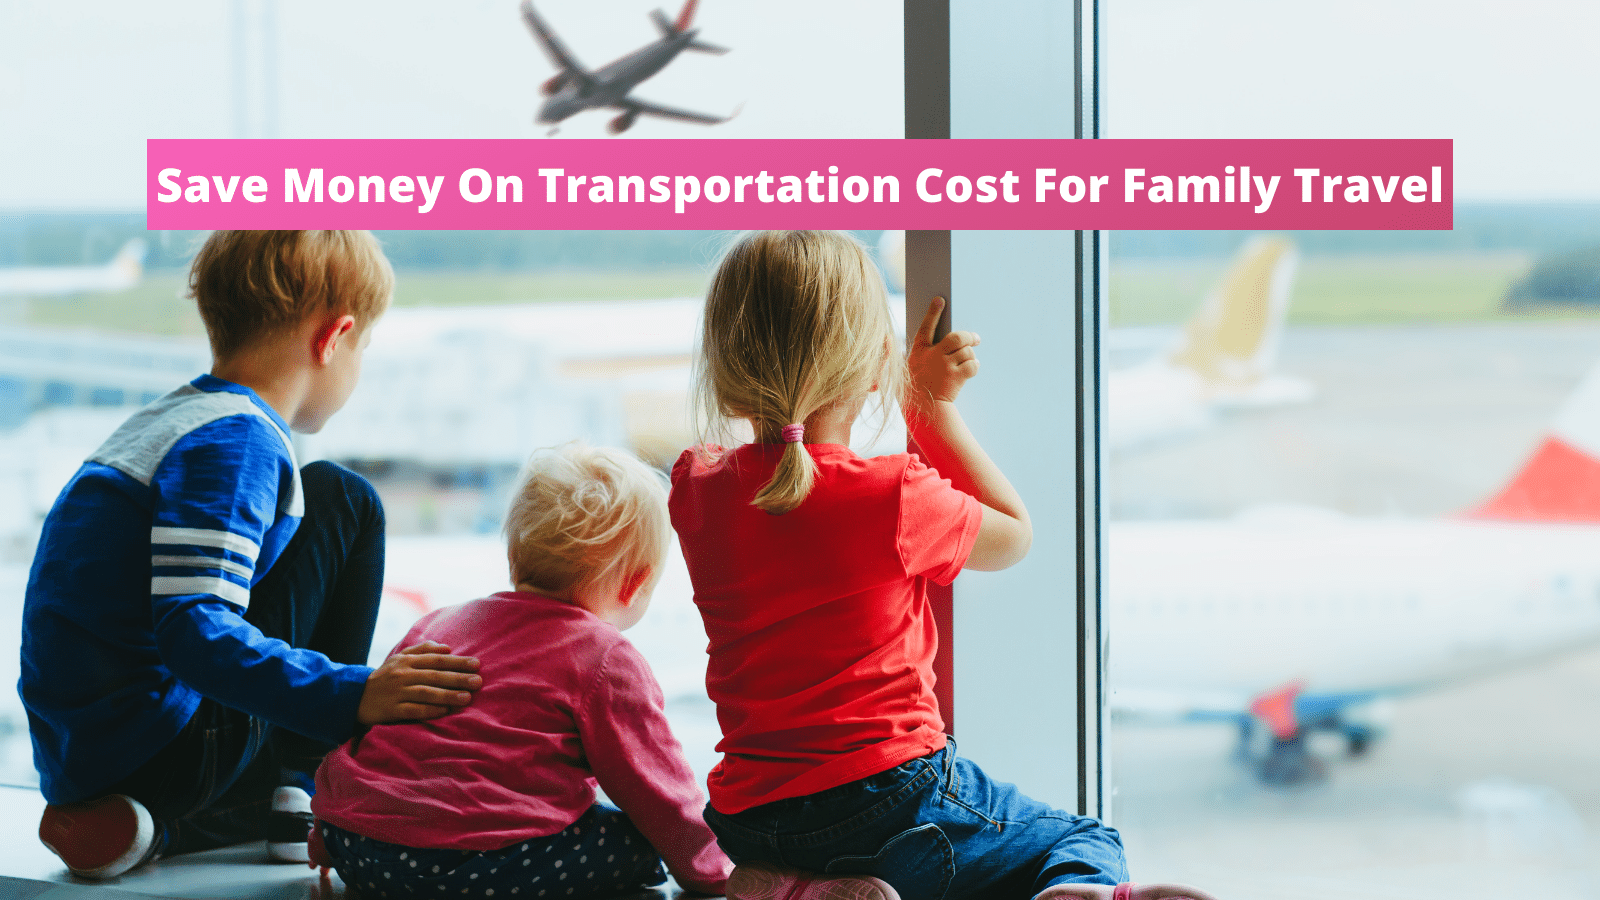 How To Save Money On Transportation Cost For Family Travel - Saving On Flights, Trains, Rental Cars, and In-And-Around Transportation